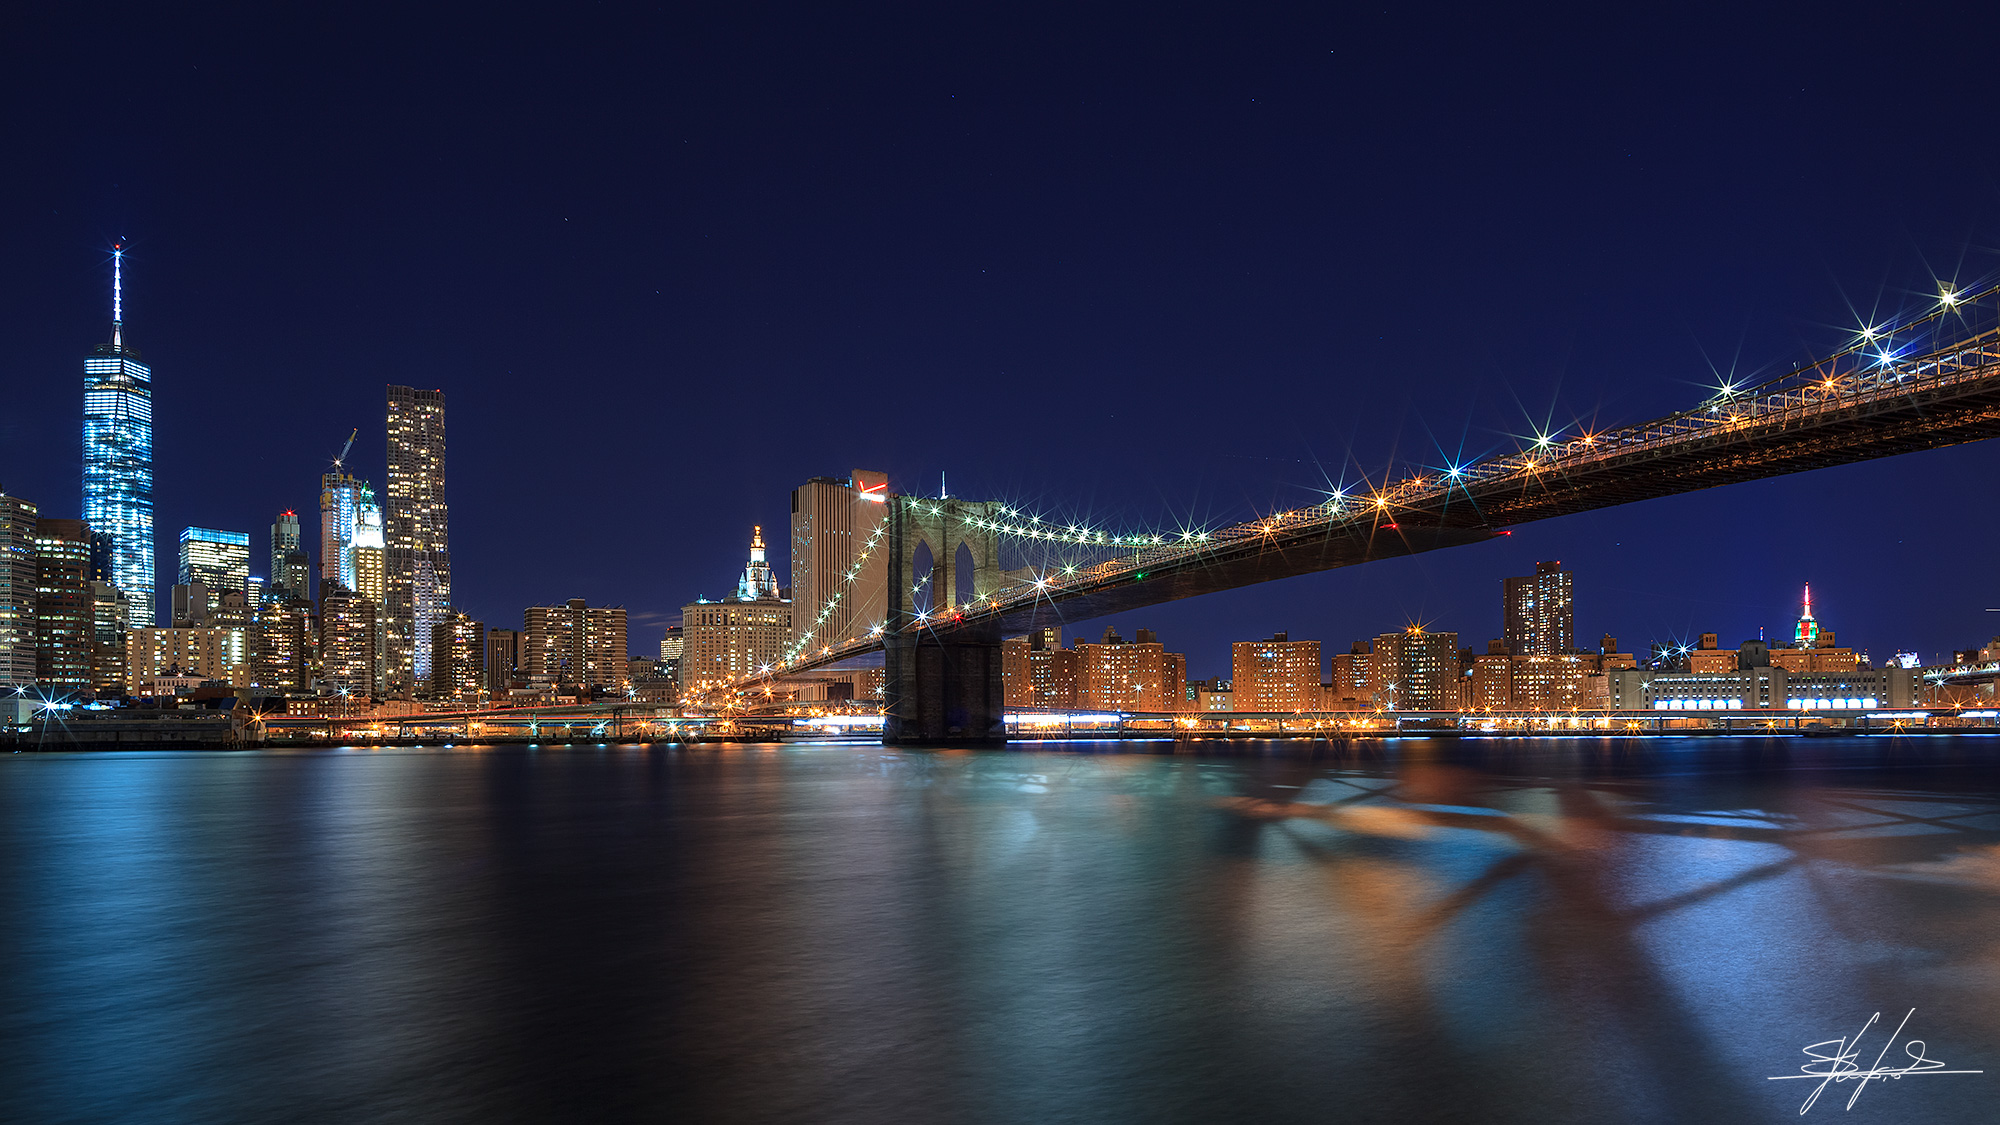 The Brooklyn Bridge (2014)